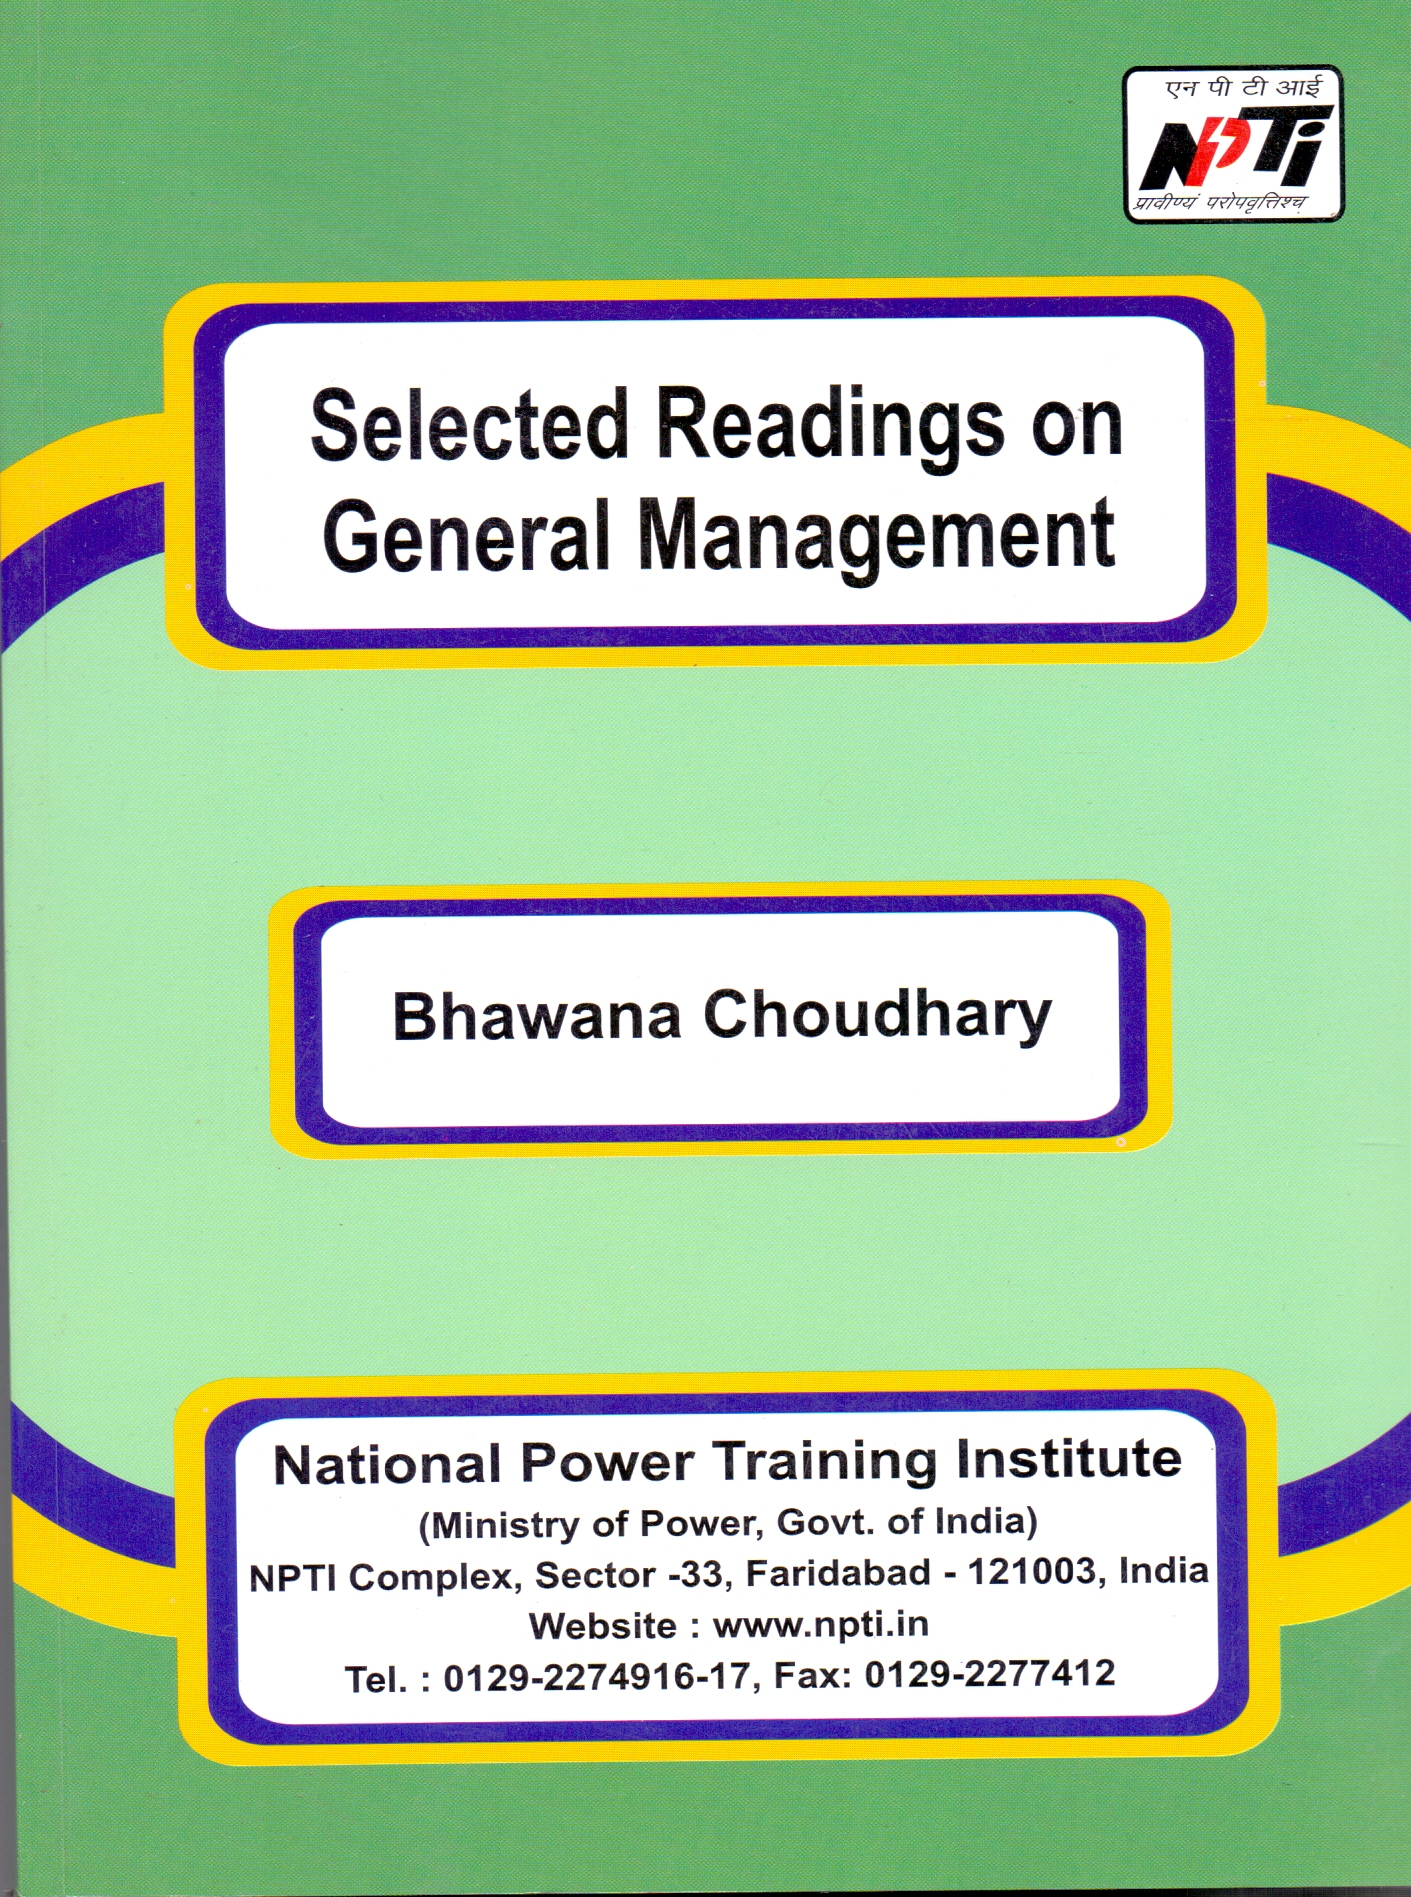 Selected Readings on General Management